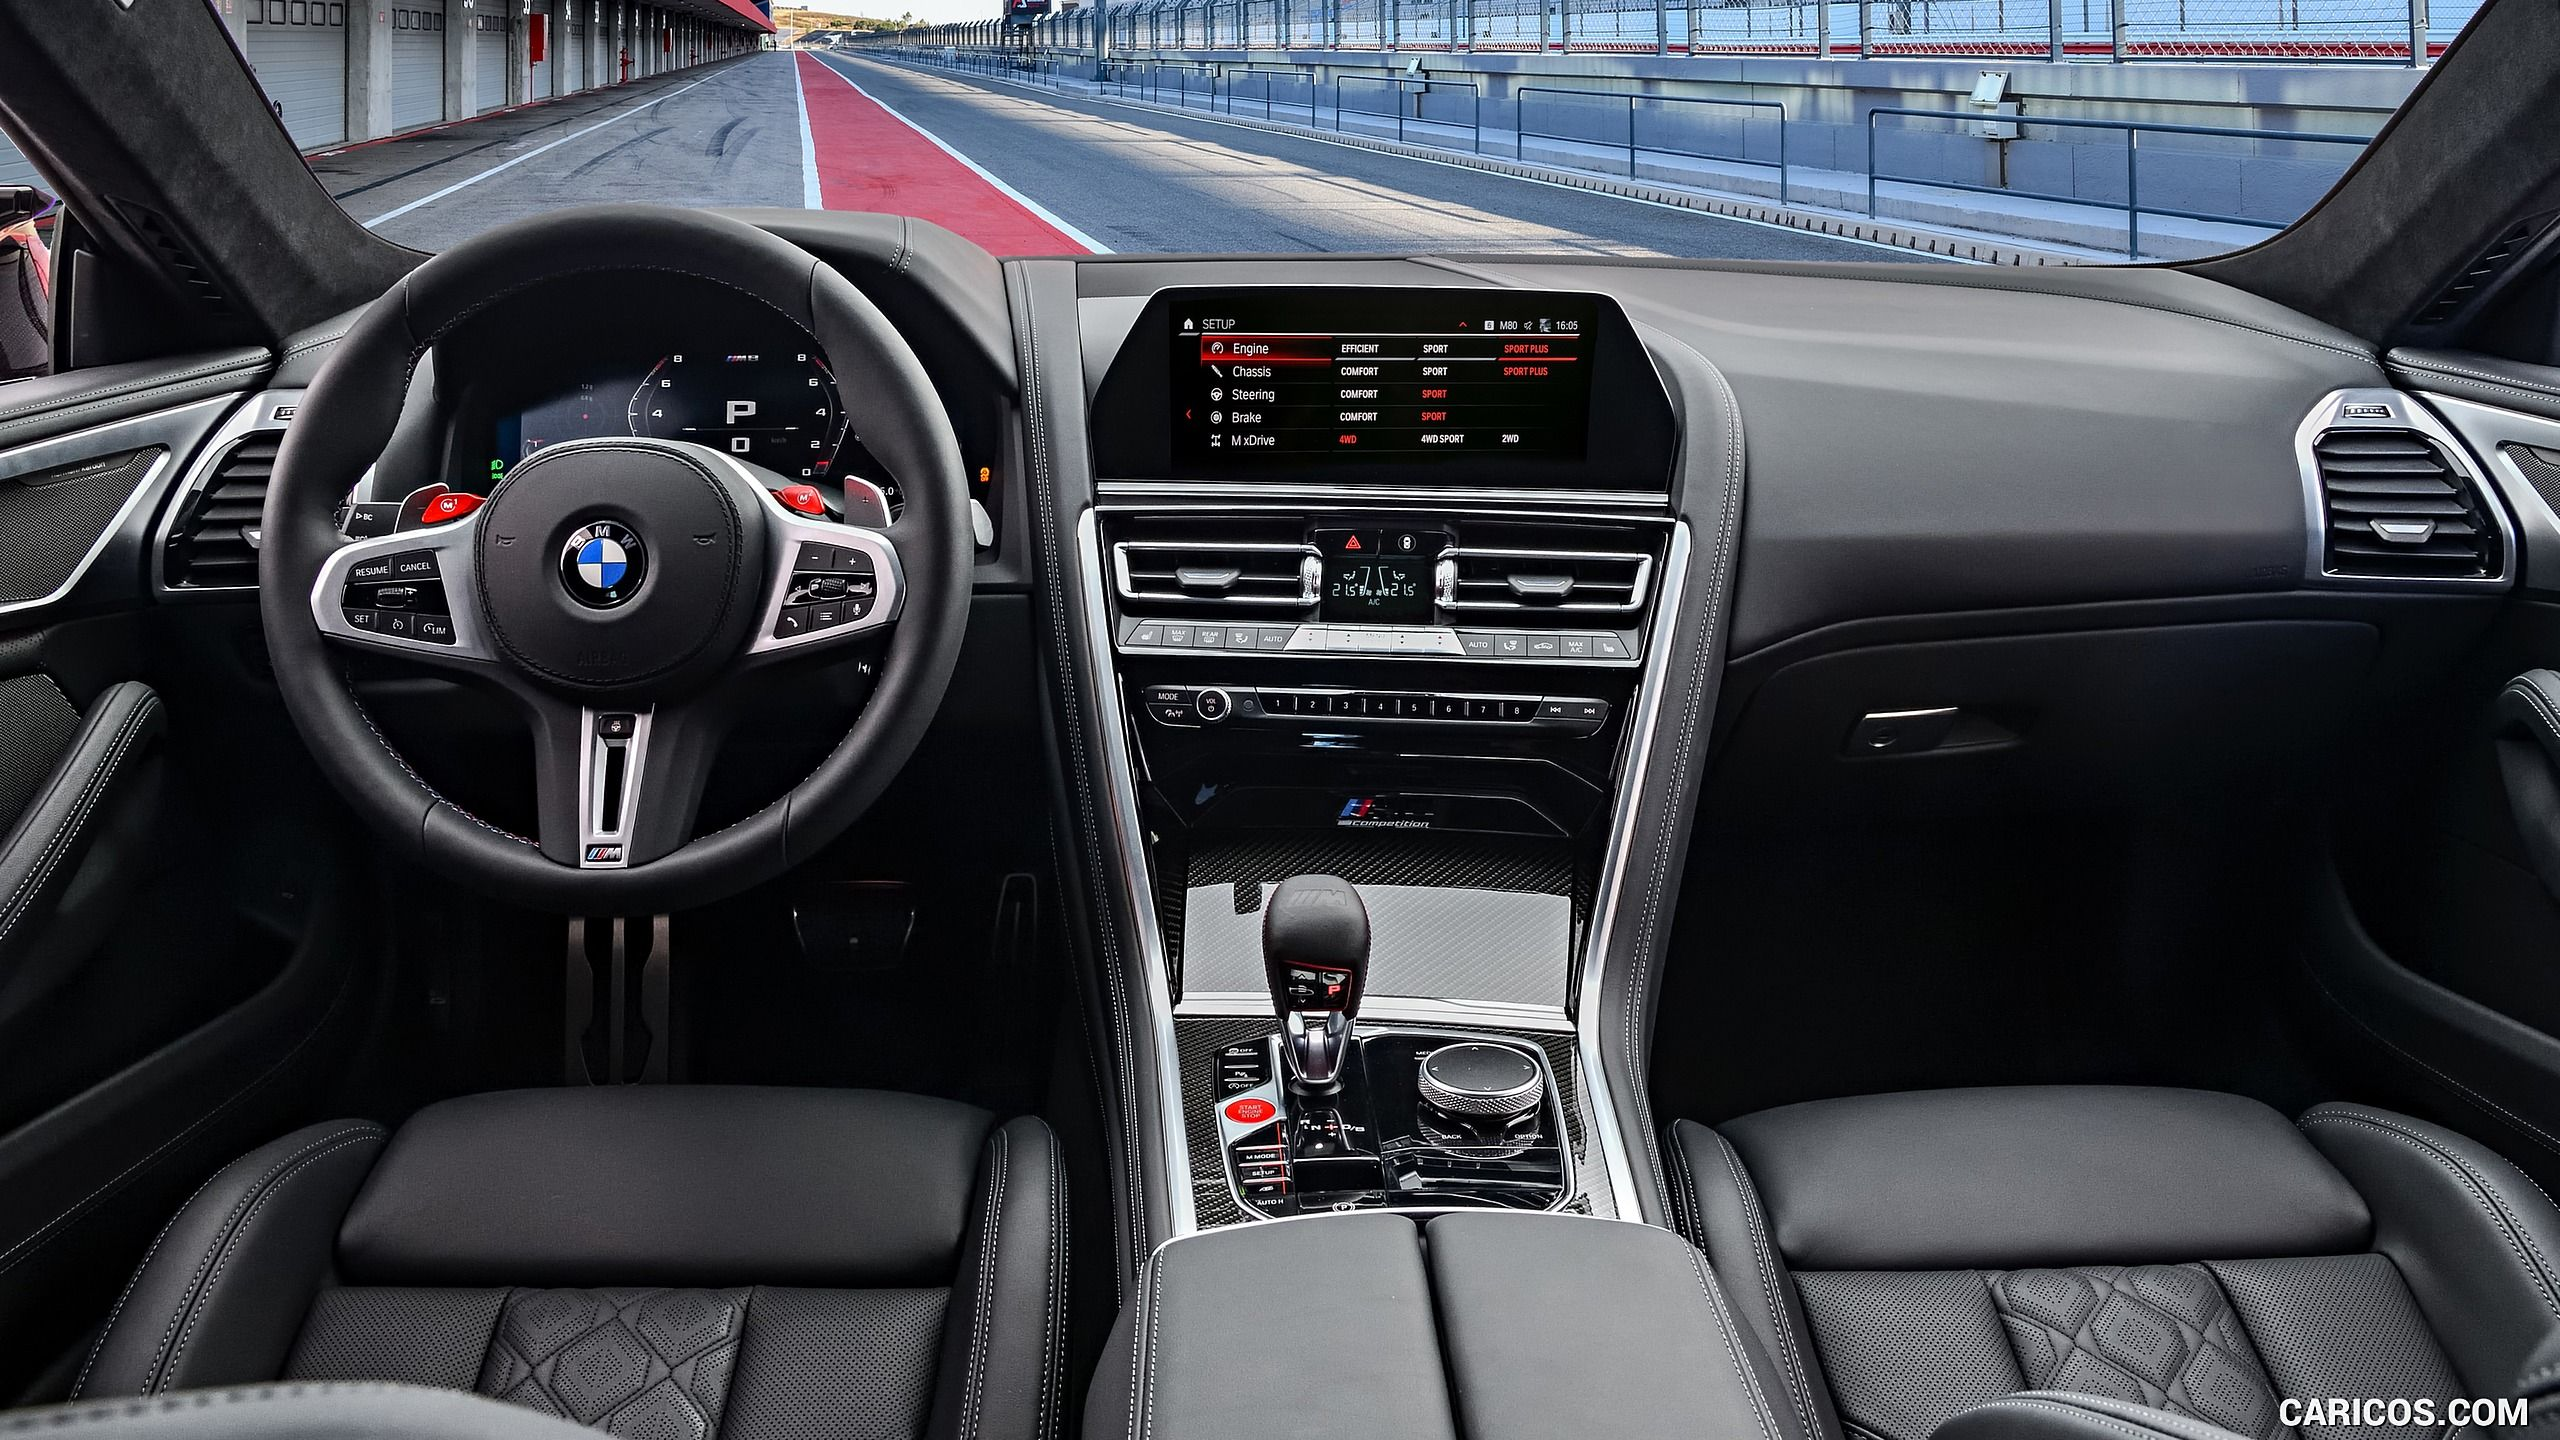 2020 Bmw M8 Competition Coupe Color Fire Red Interior Cockpit Hd In 2020 Bmw Coupe Bmw Interior